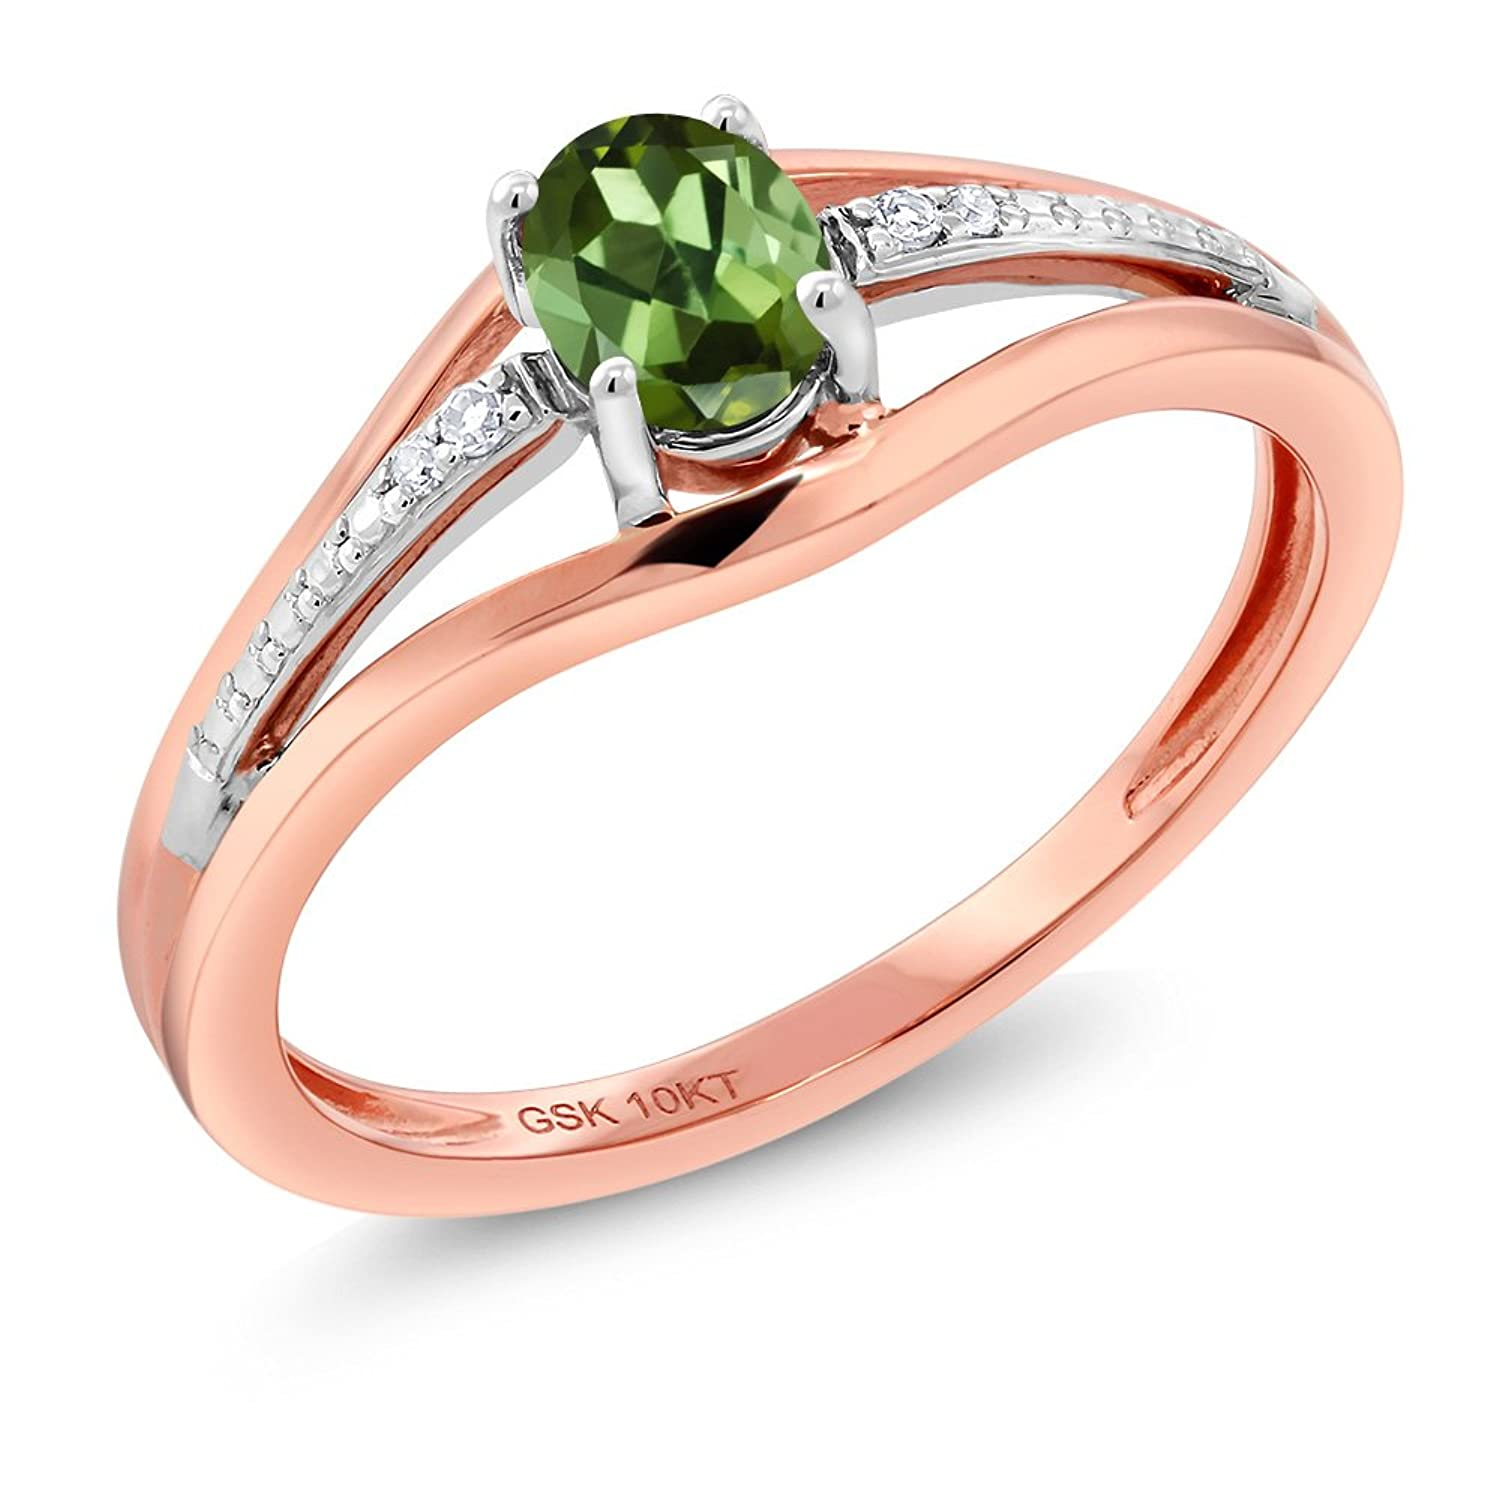 10K Two Tone Gold 0.33 Ct Green Tourmaline and Diamond Engagement Ring - Sizes 5 - 9